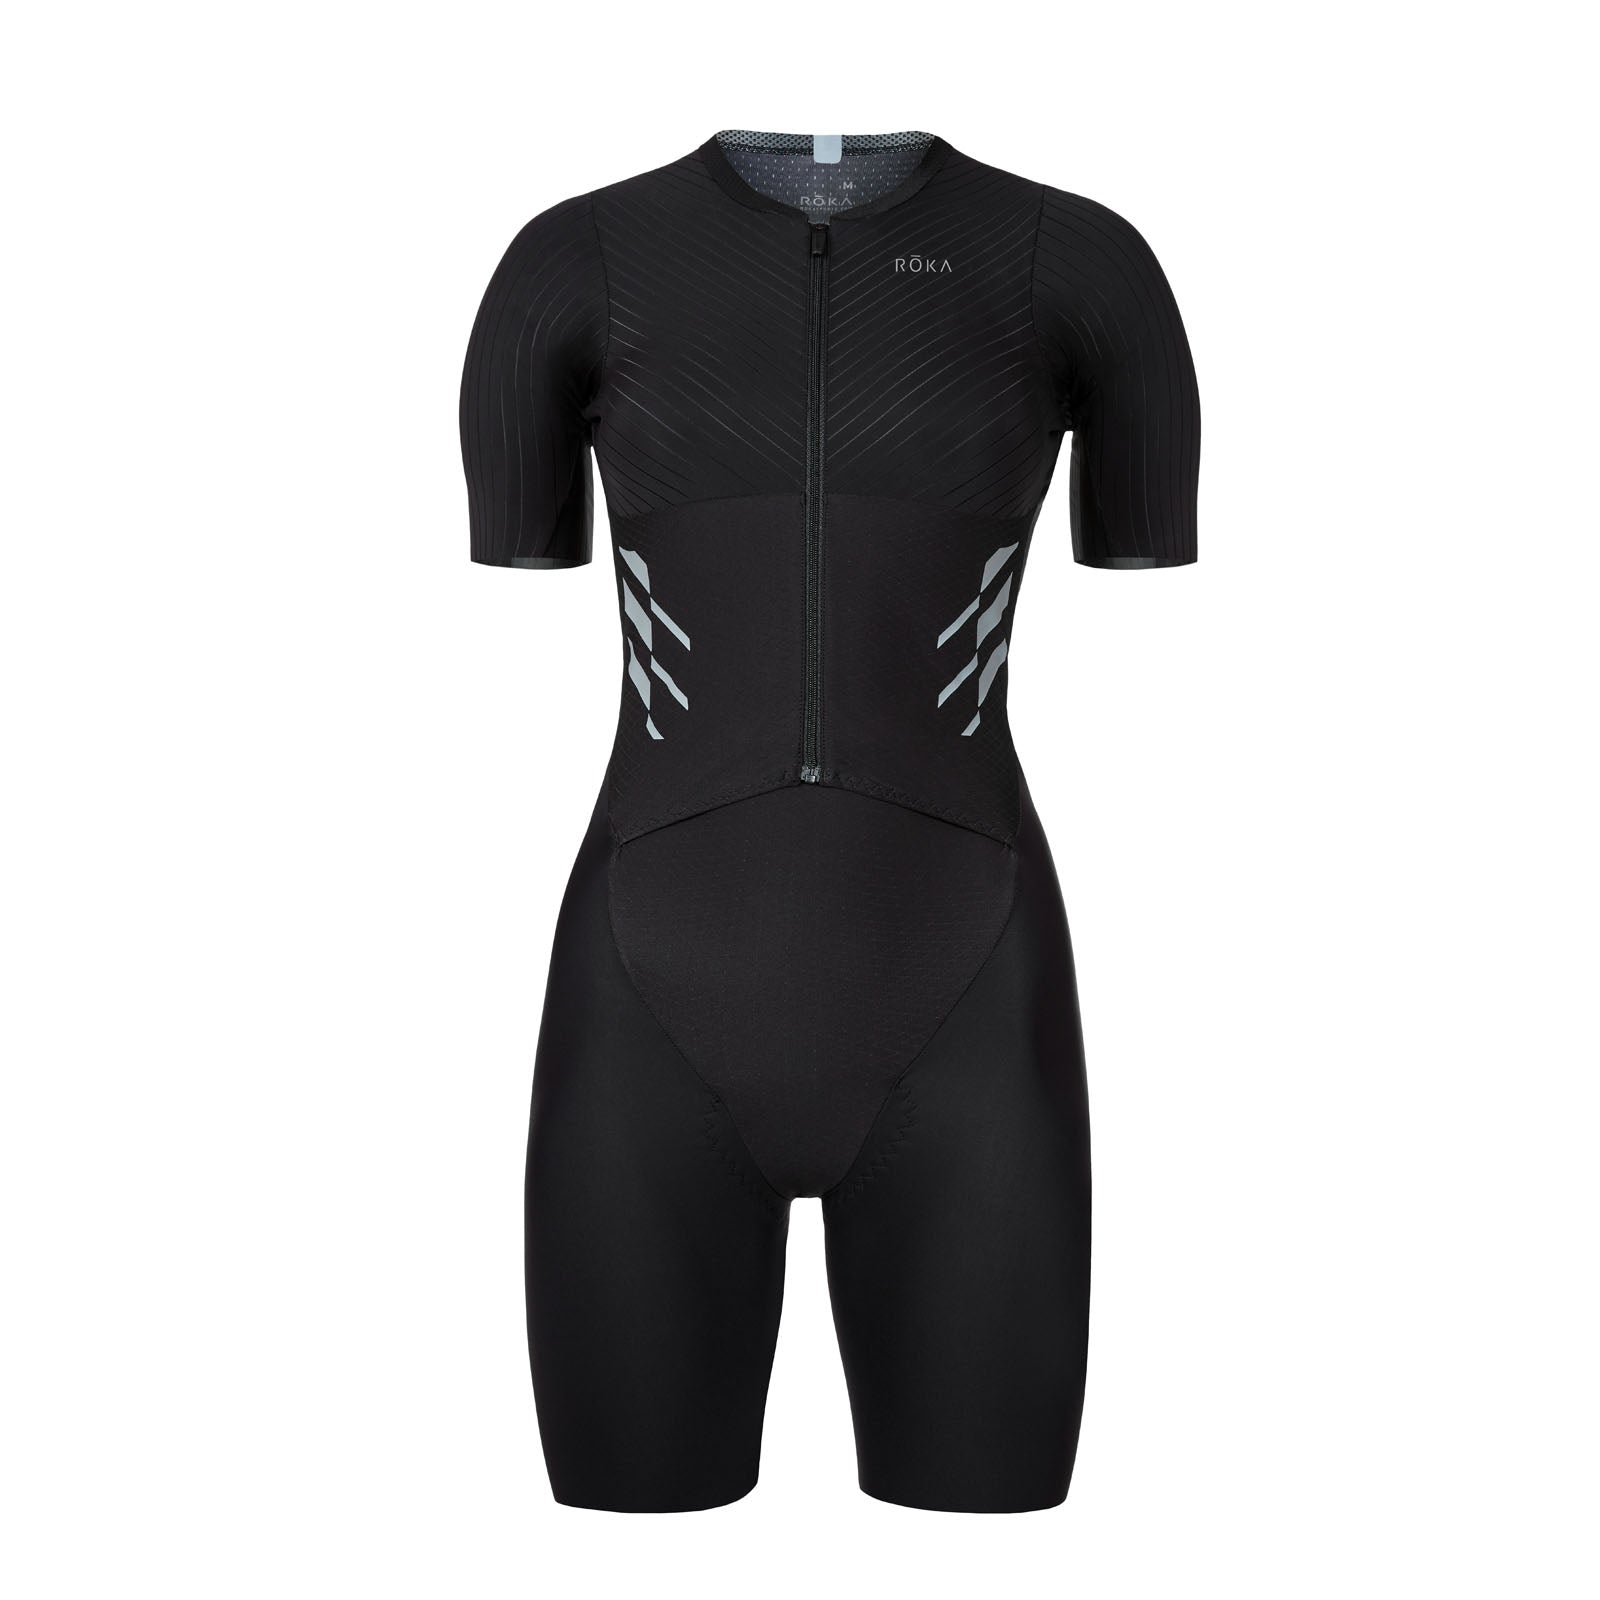 Women s Gen II Elite Aero Short Sleeve Tri Suit - Front View - Fastest  Women s Tri 3094e1867